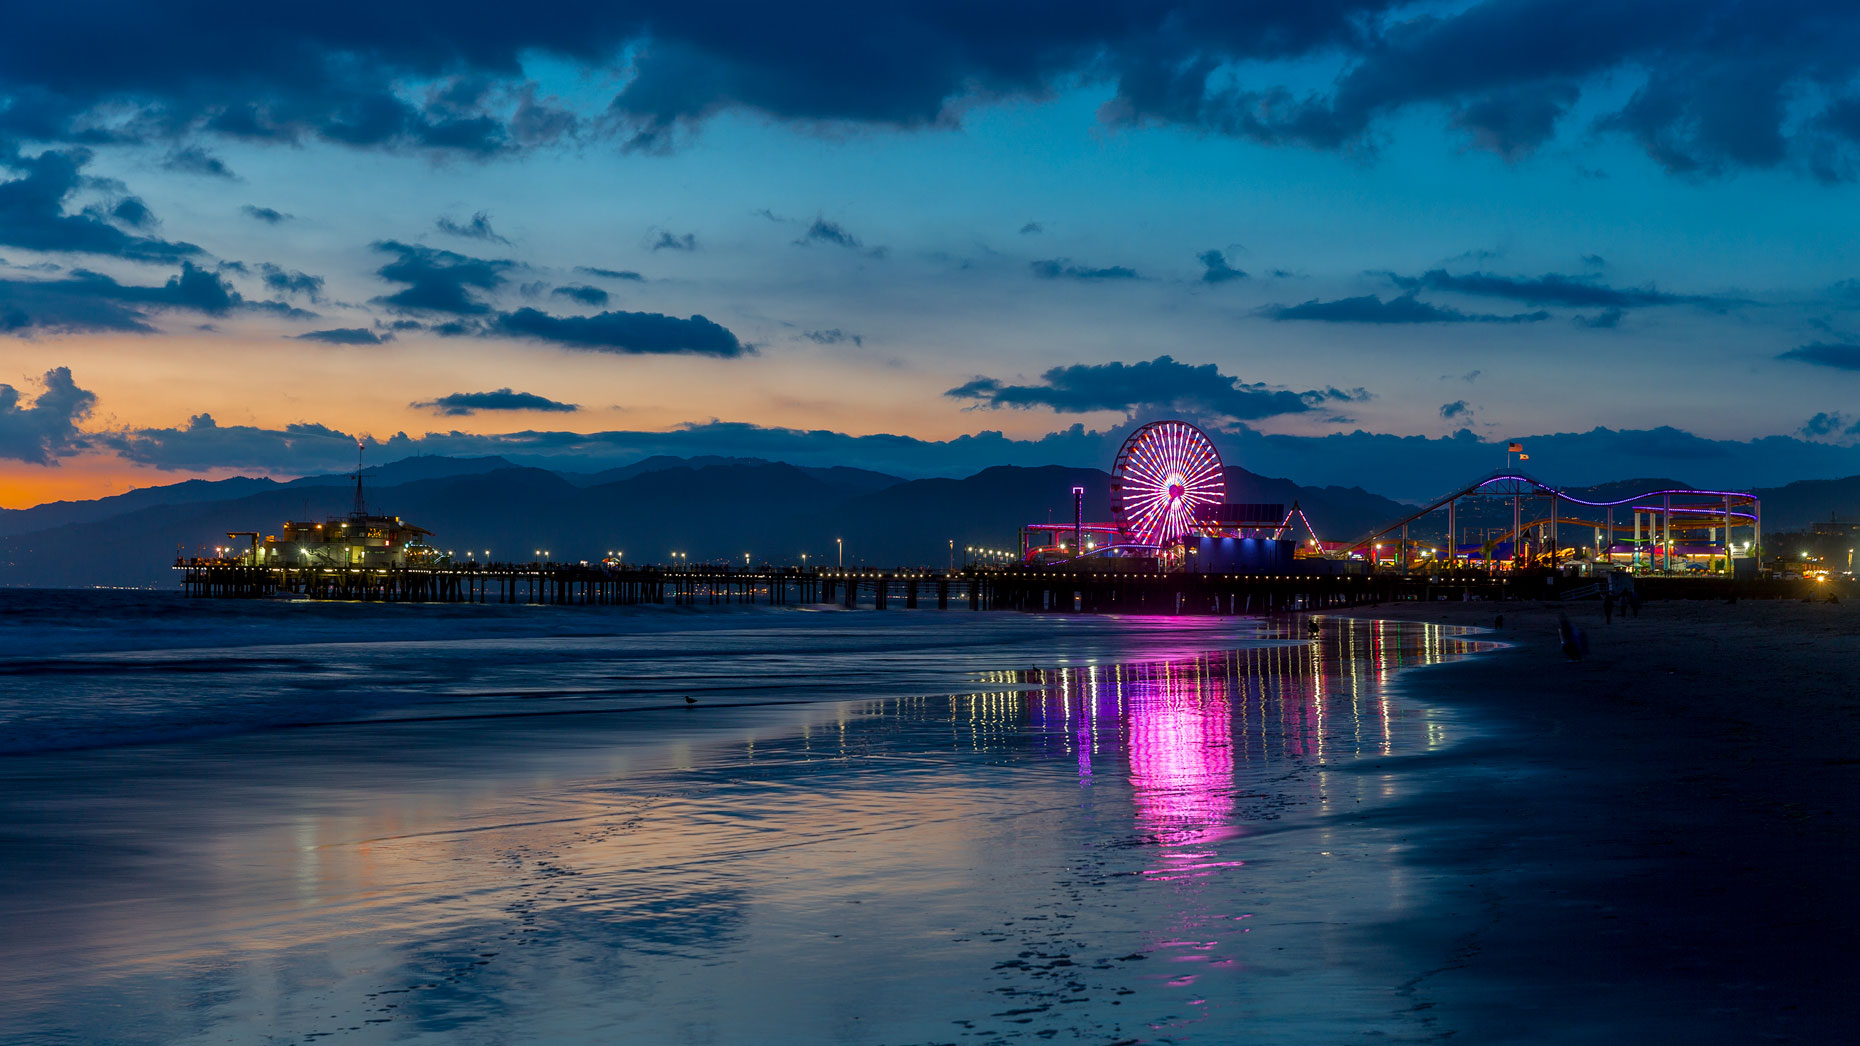 William_Short_Photography_Santa_Monica_Pier_163